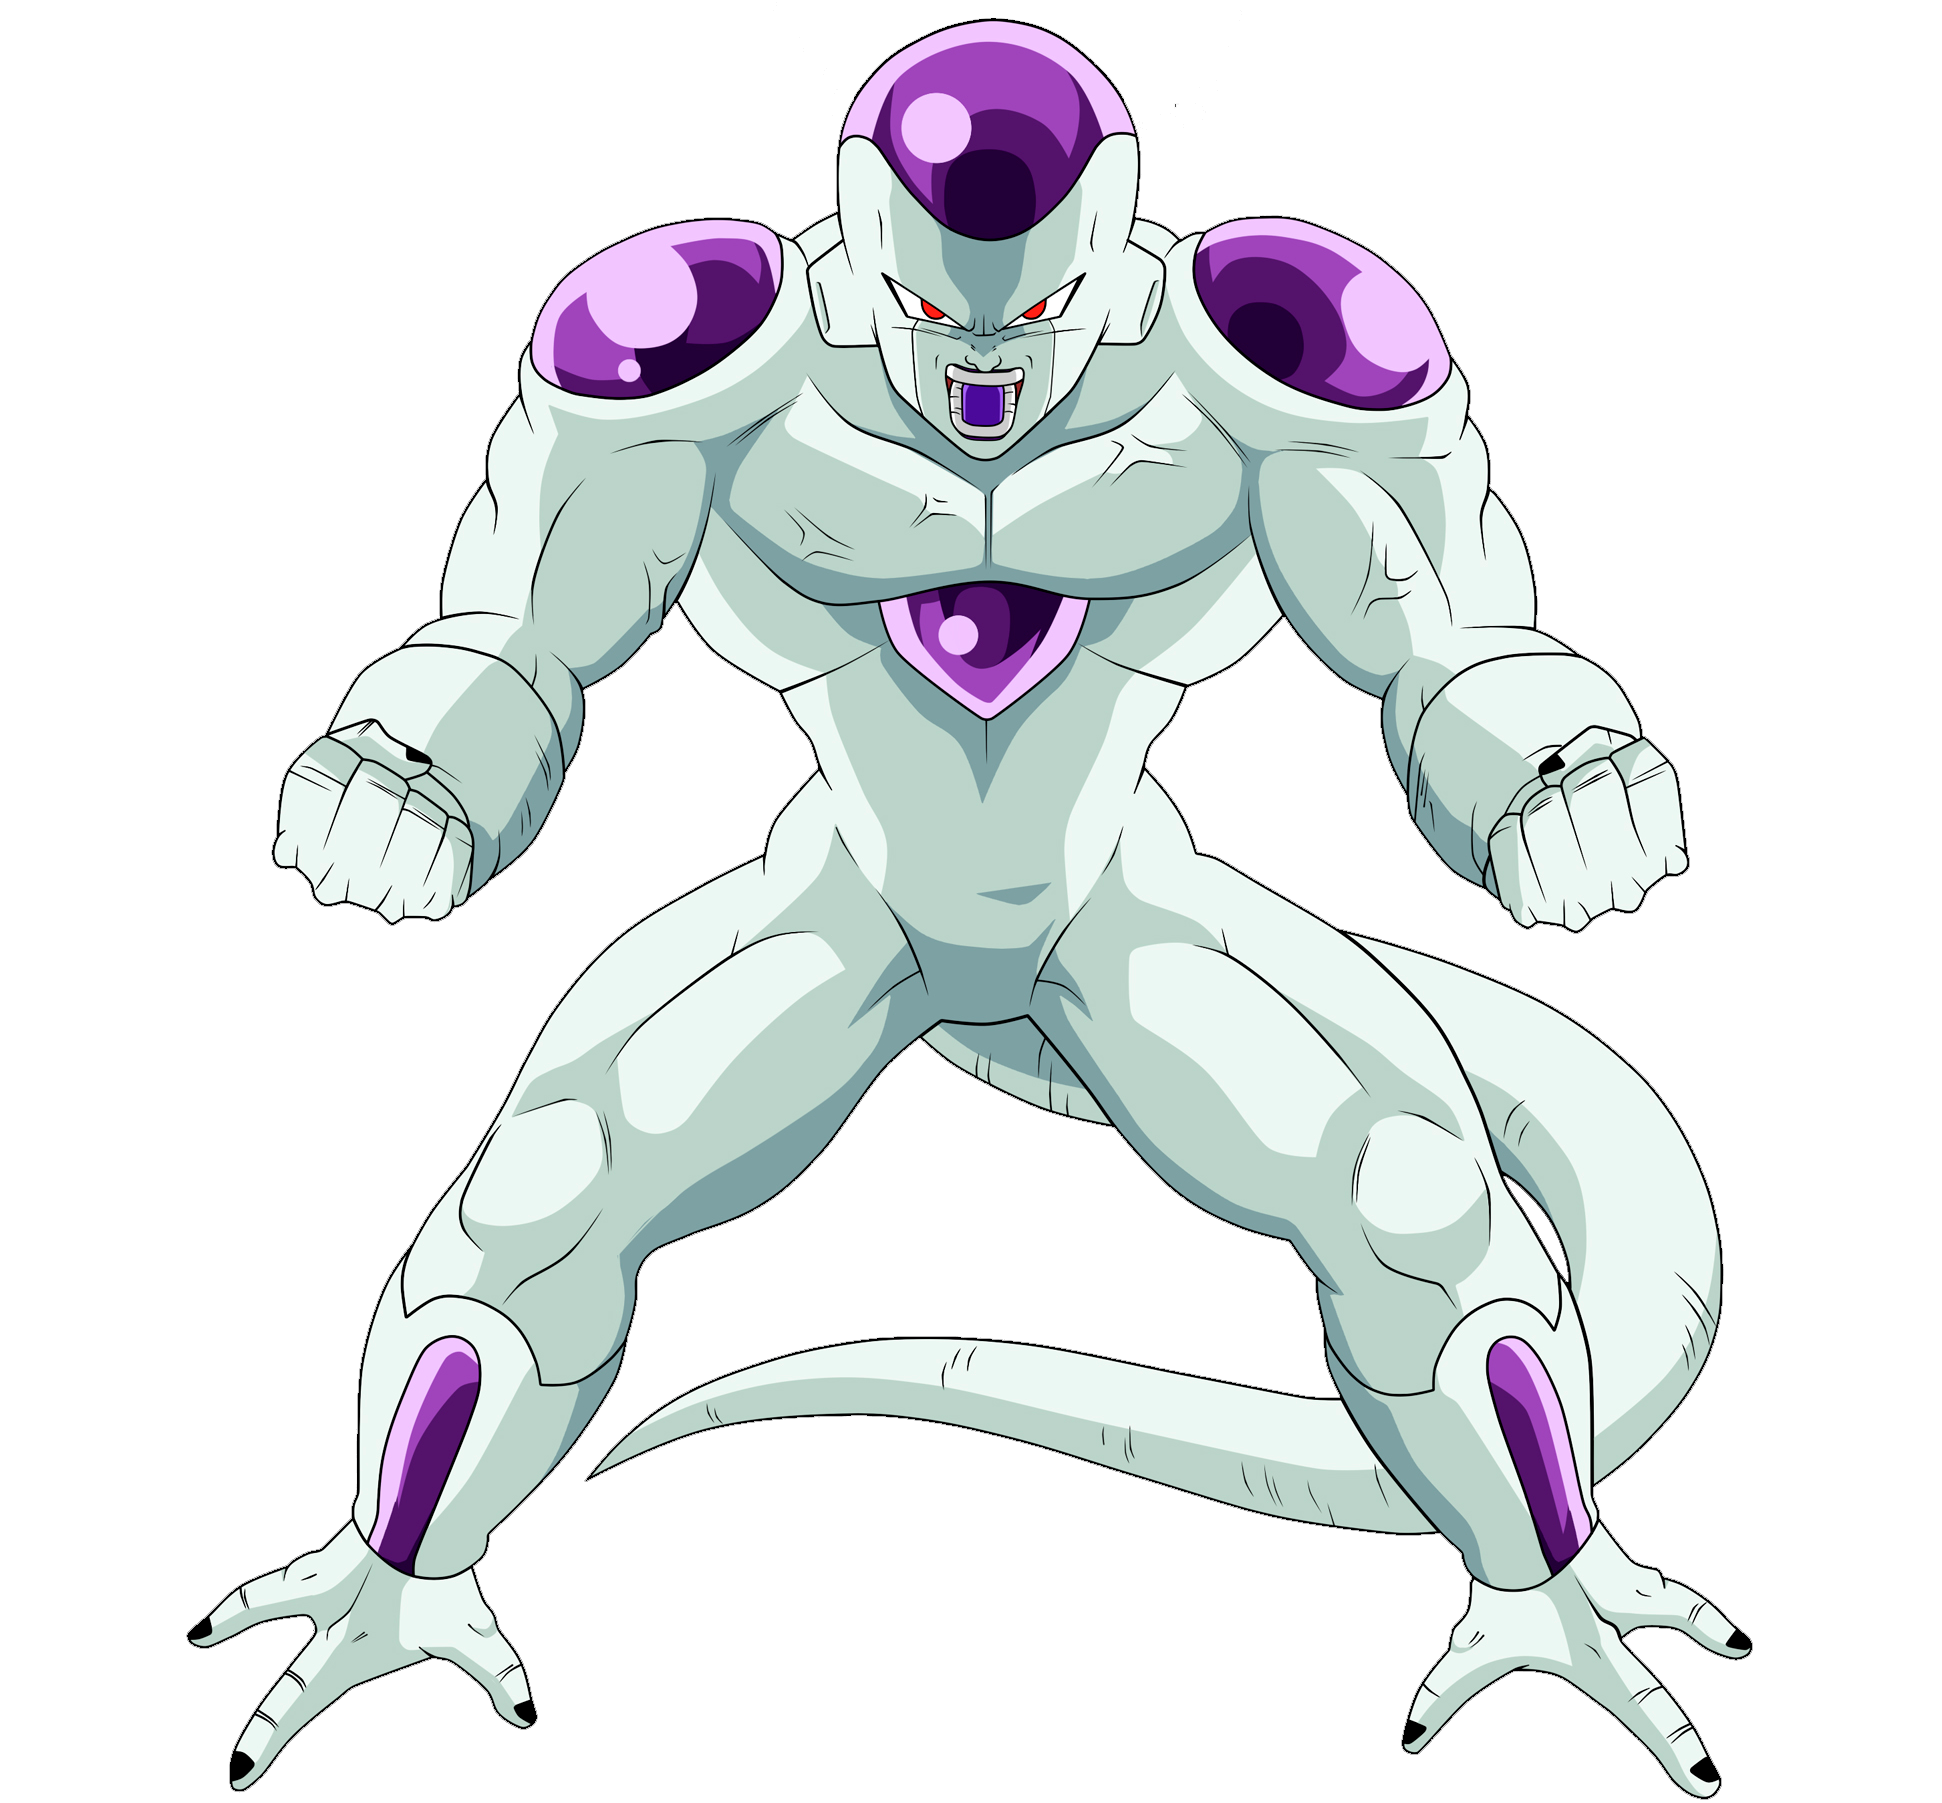 1487637028 317 los villanos mas poderosos de dragon ball - Los villanos más poderosos de Dragon Ball